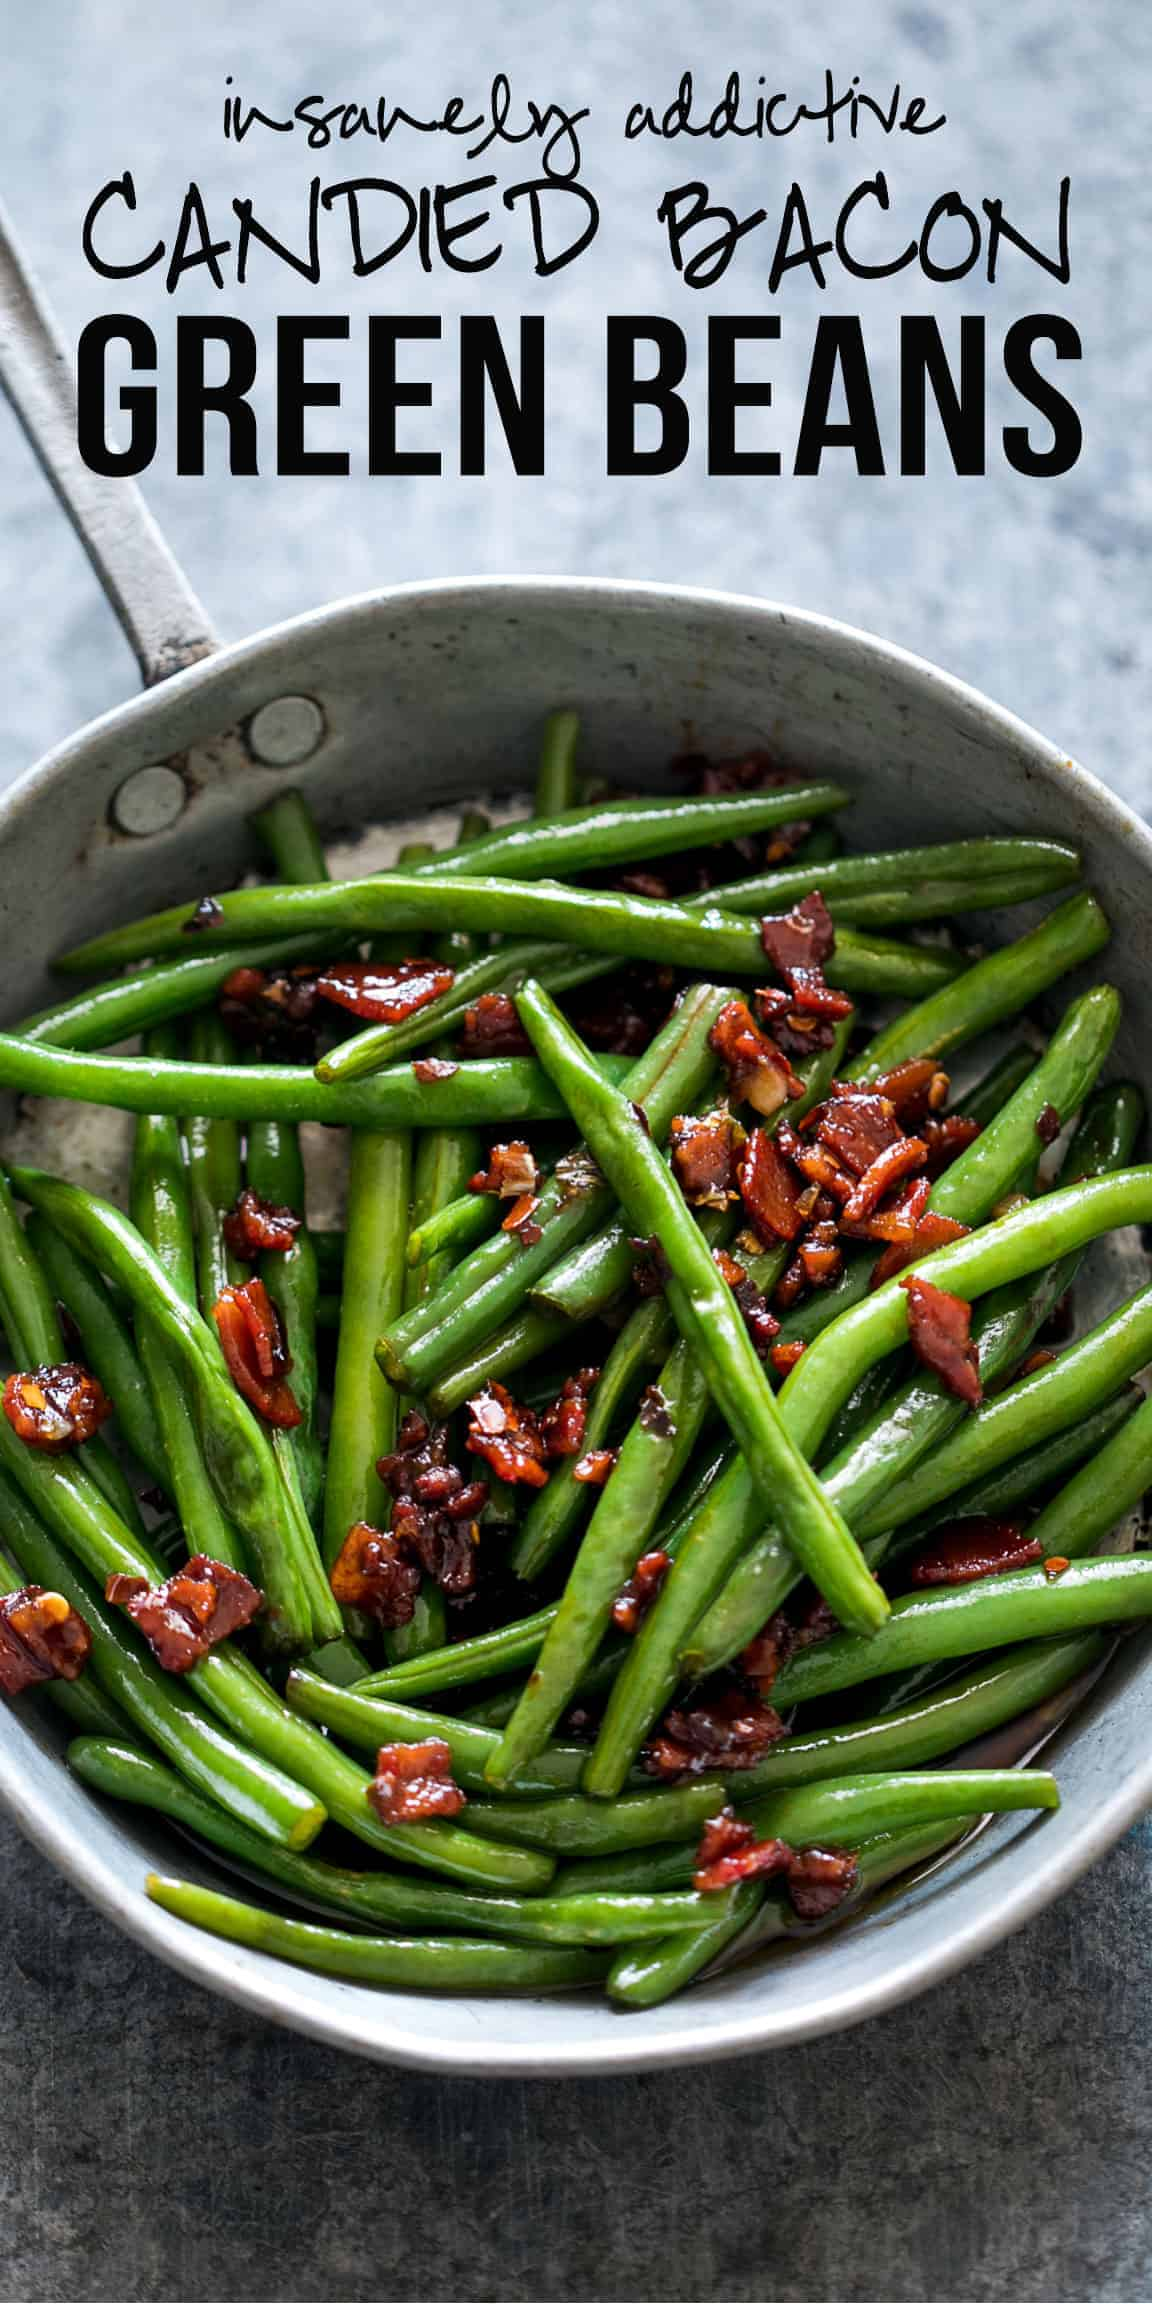 Sauteed Brown Sugar Bacon Garlic Green Beans make for a really unique side dish that will leave your guests in awe! This recipe comes with the basics of green beans and answers all your questions about the whole process. You can substitute fresh beans with frozen ones to get this garlicky and sweet side dish! #myfoodstory #recipe #howtomake #beans #greens #healthy #easy